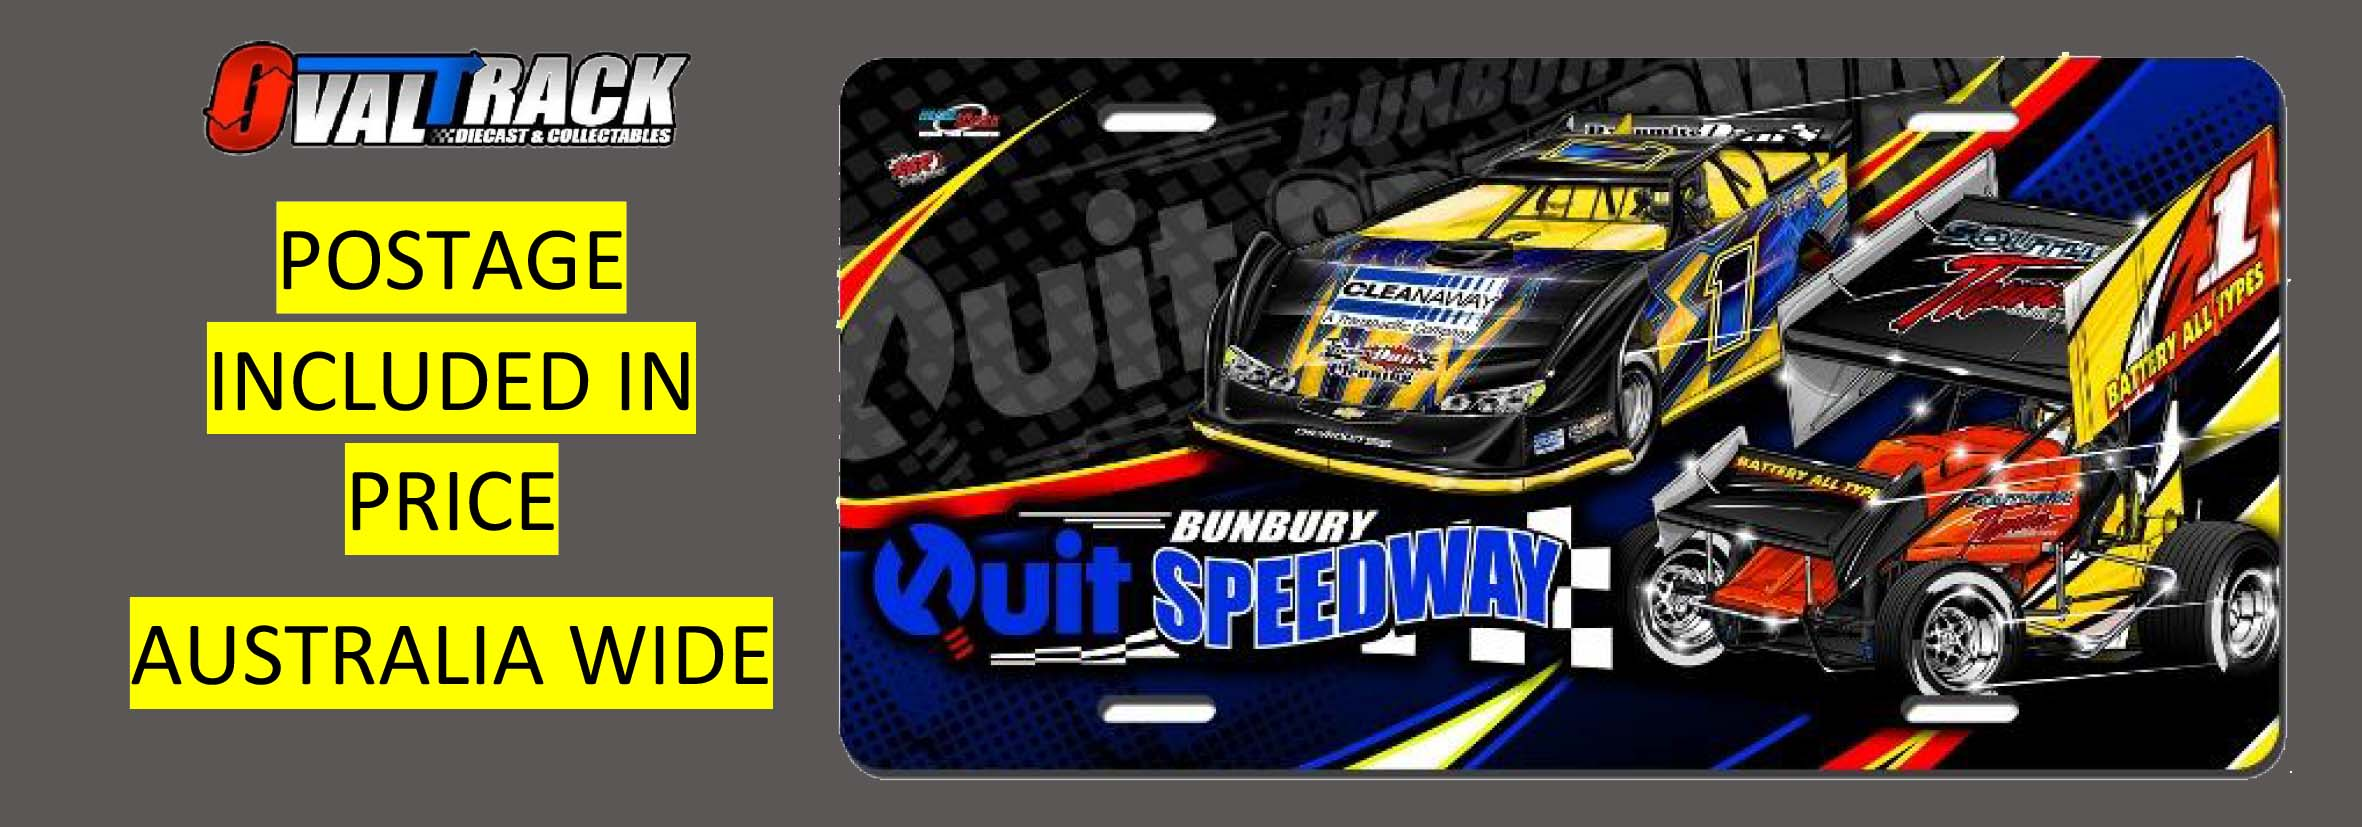 /shared/sliderimages/BUNBURY SPEEDWAY SLIDER OT.jpg